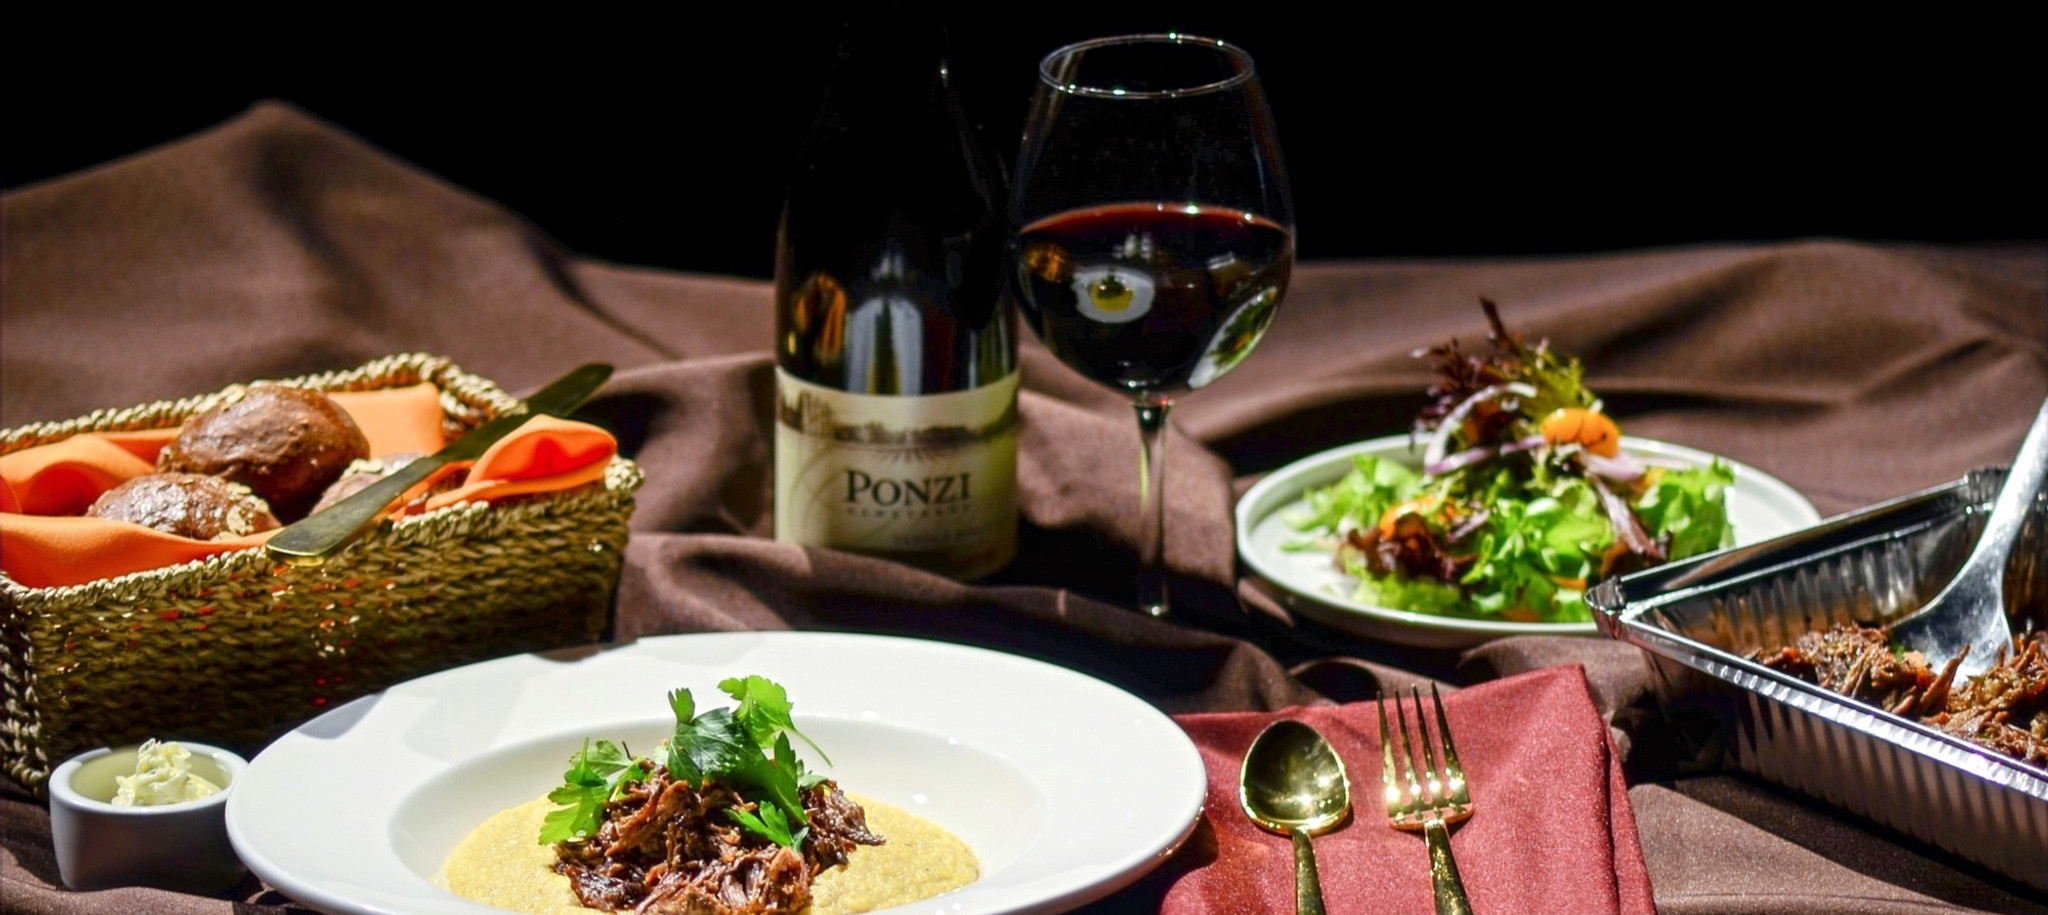 Pinot Braised Beef with Creamy Polenta.j